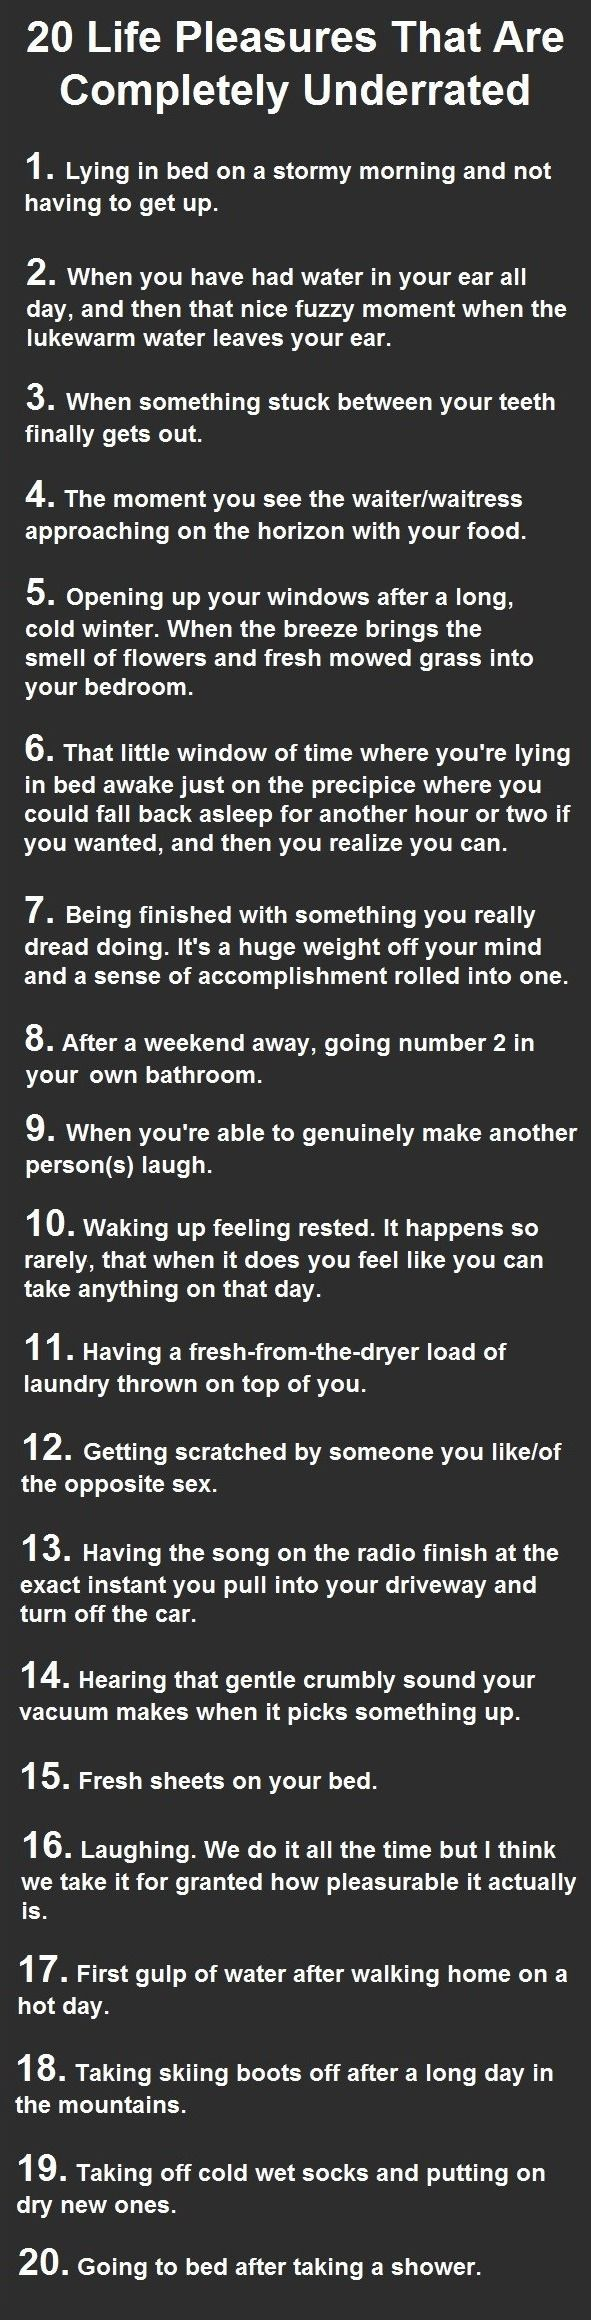 20 Life Pleasures That Are Completely Underrated